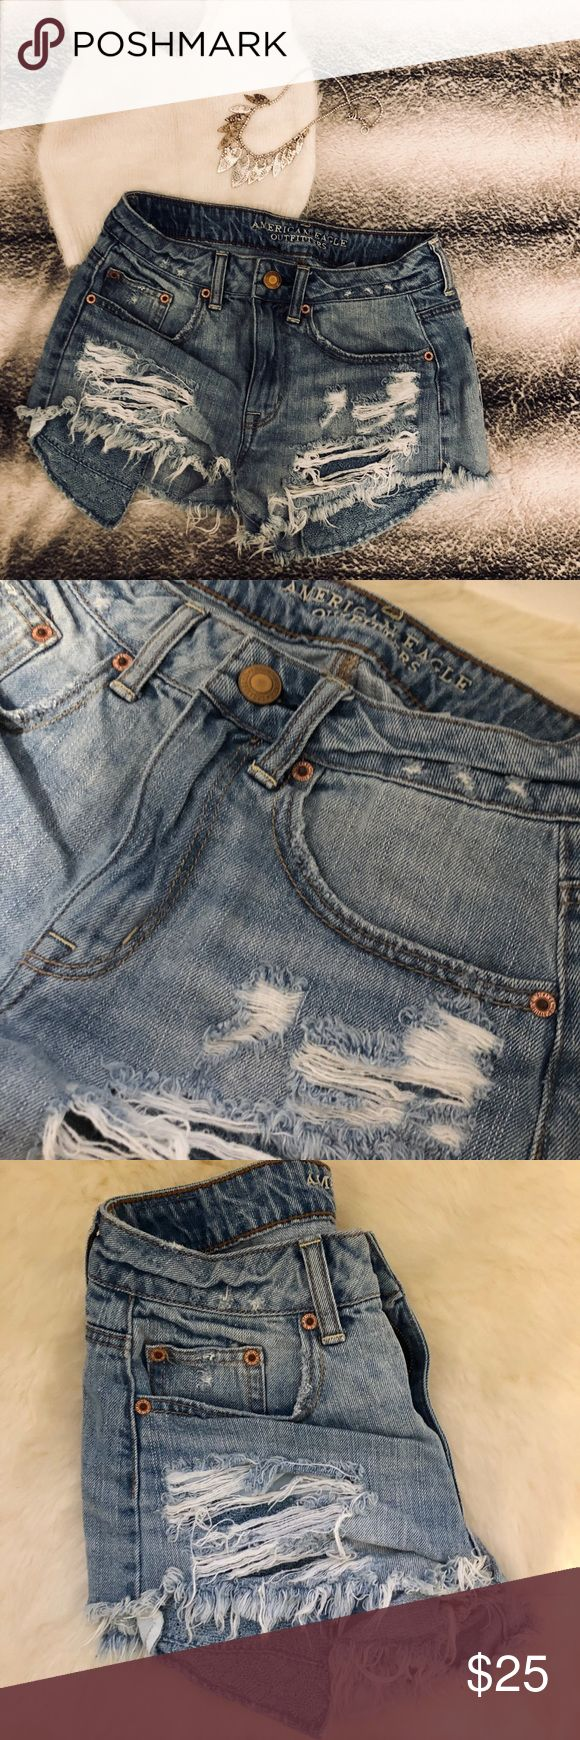 """American Eagle High Rise Jean Shorts Adorable high rise festival ripped jean shorts by American Eagle. Excellent condition. Size 2. Waist measures about 30"""" around. (last photo is not exact shorts, but very similar style from American Eagle). Offers welcome:) American Eagle Outfitters Shorts Jean Shorts"""